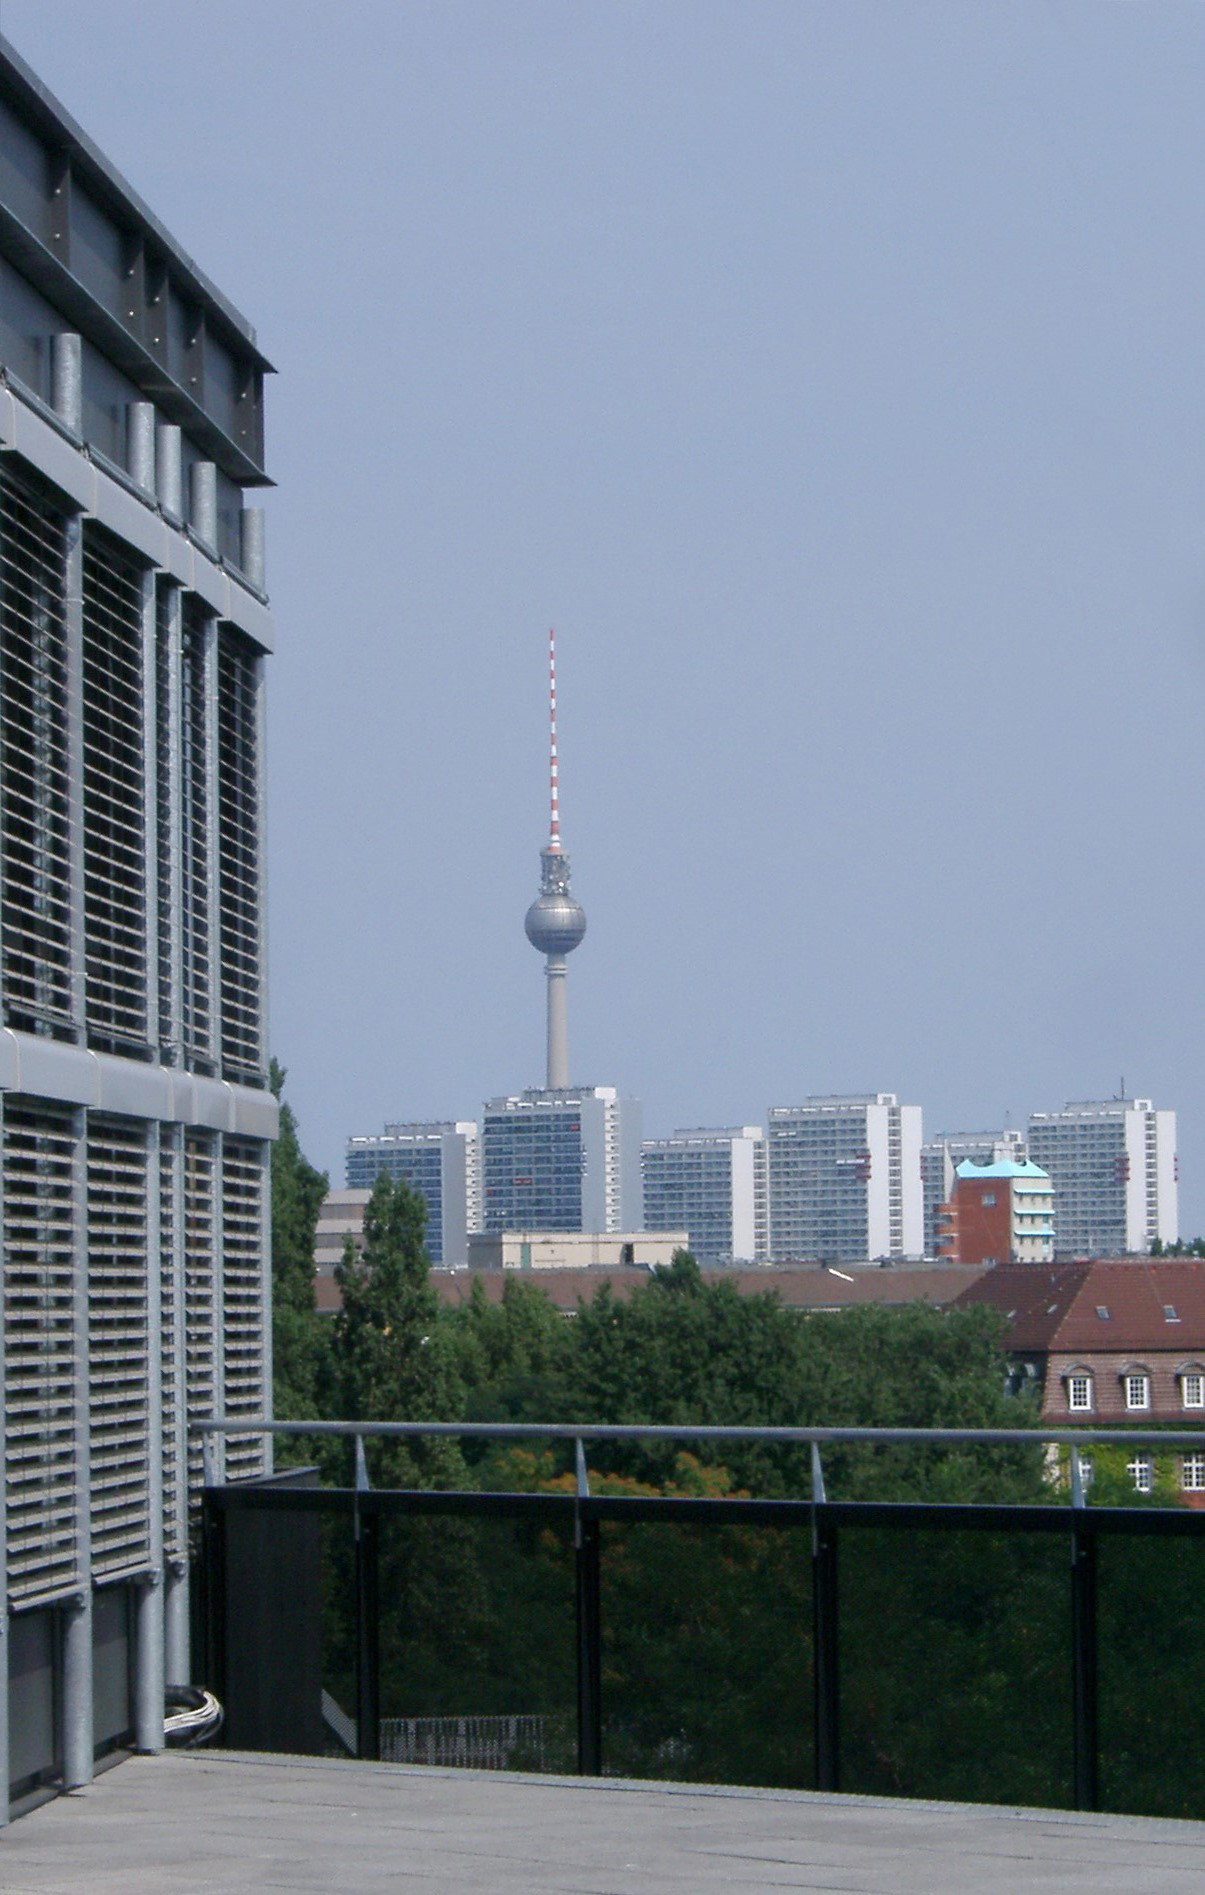 View of high-rise architecture in Berlin with the Fernsehturm TV tower and antenna towering above them